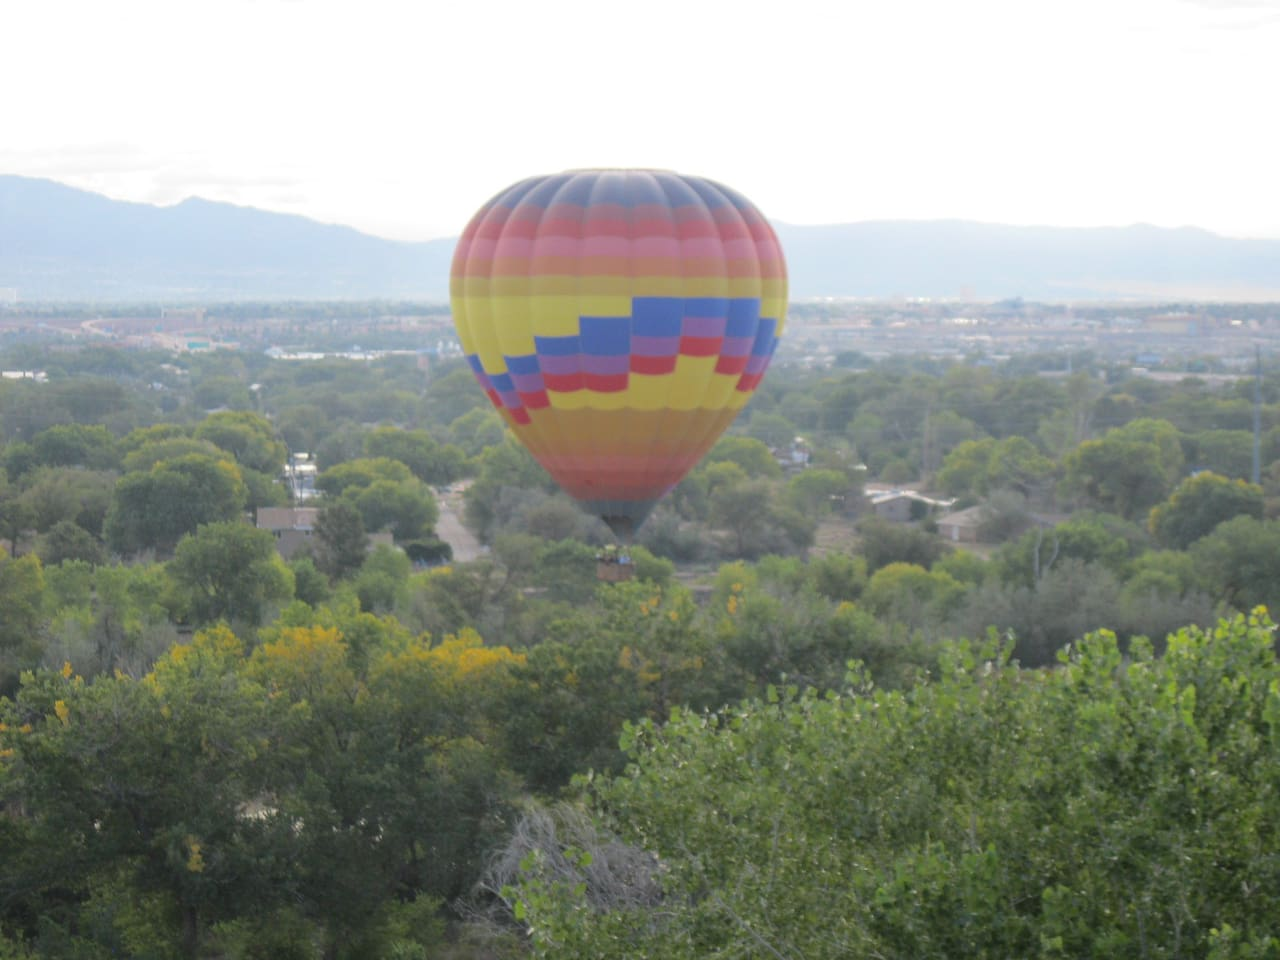 View all of Albuquerque (ABQ) including early morning sunrise, dazzling city lights and hot air balloons all from our east facing balcony, dining room or sitting area. This is a Splash-n-Dash as seen from the balcony.